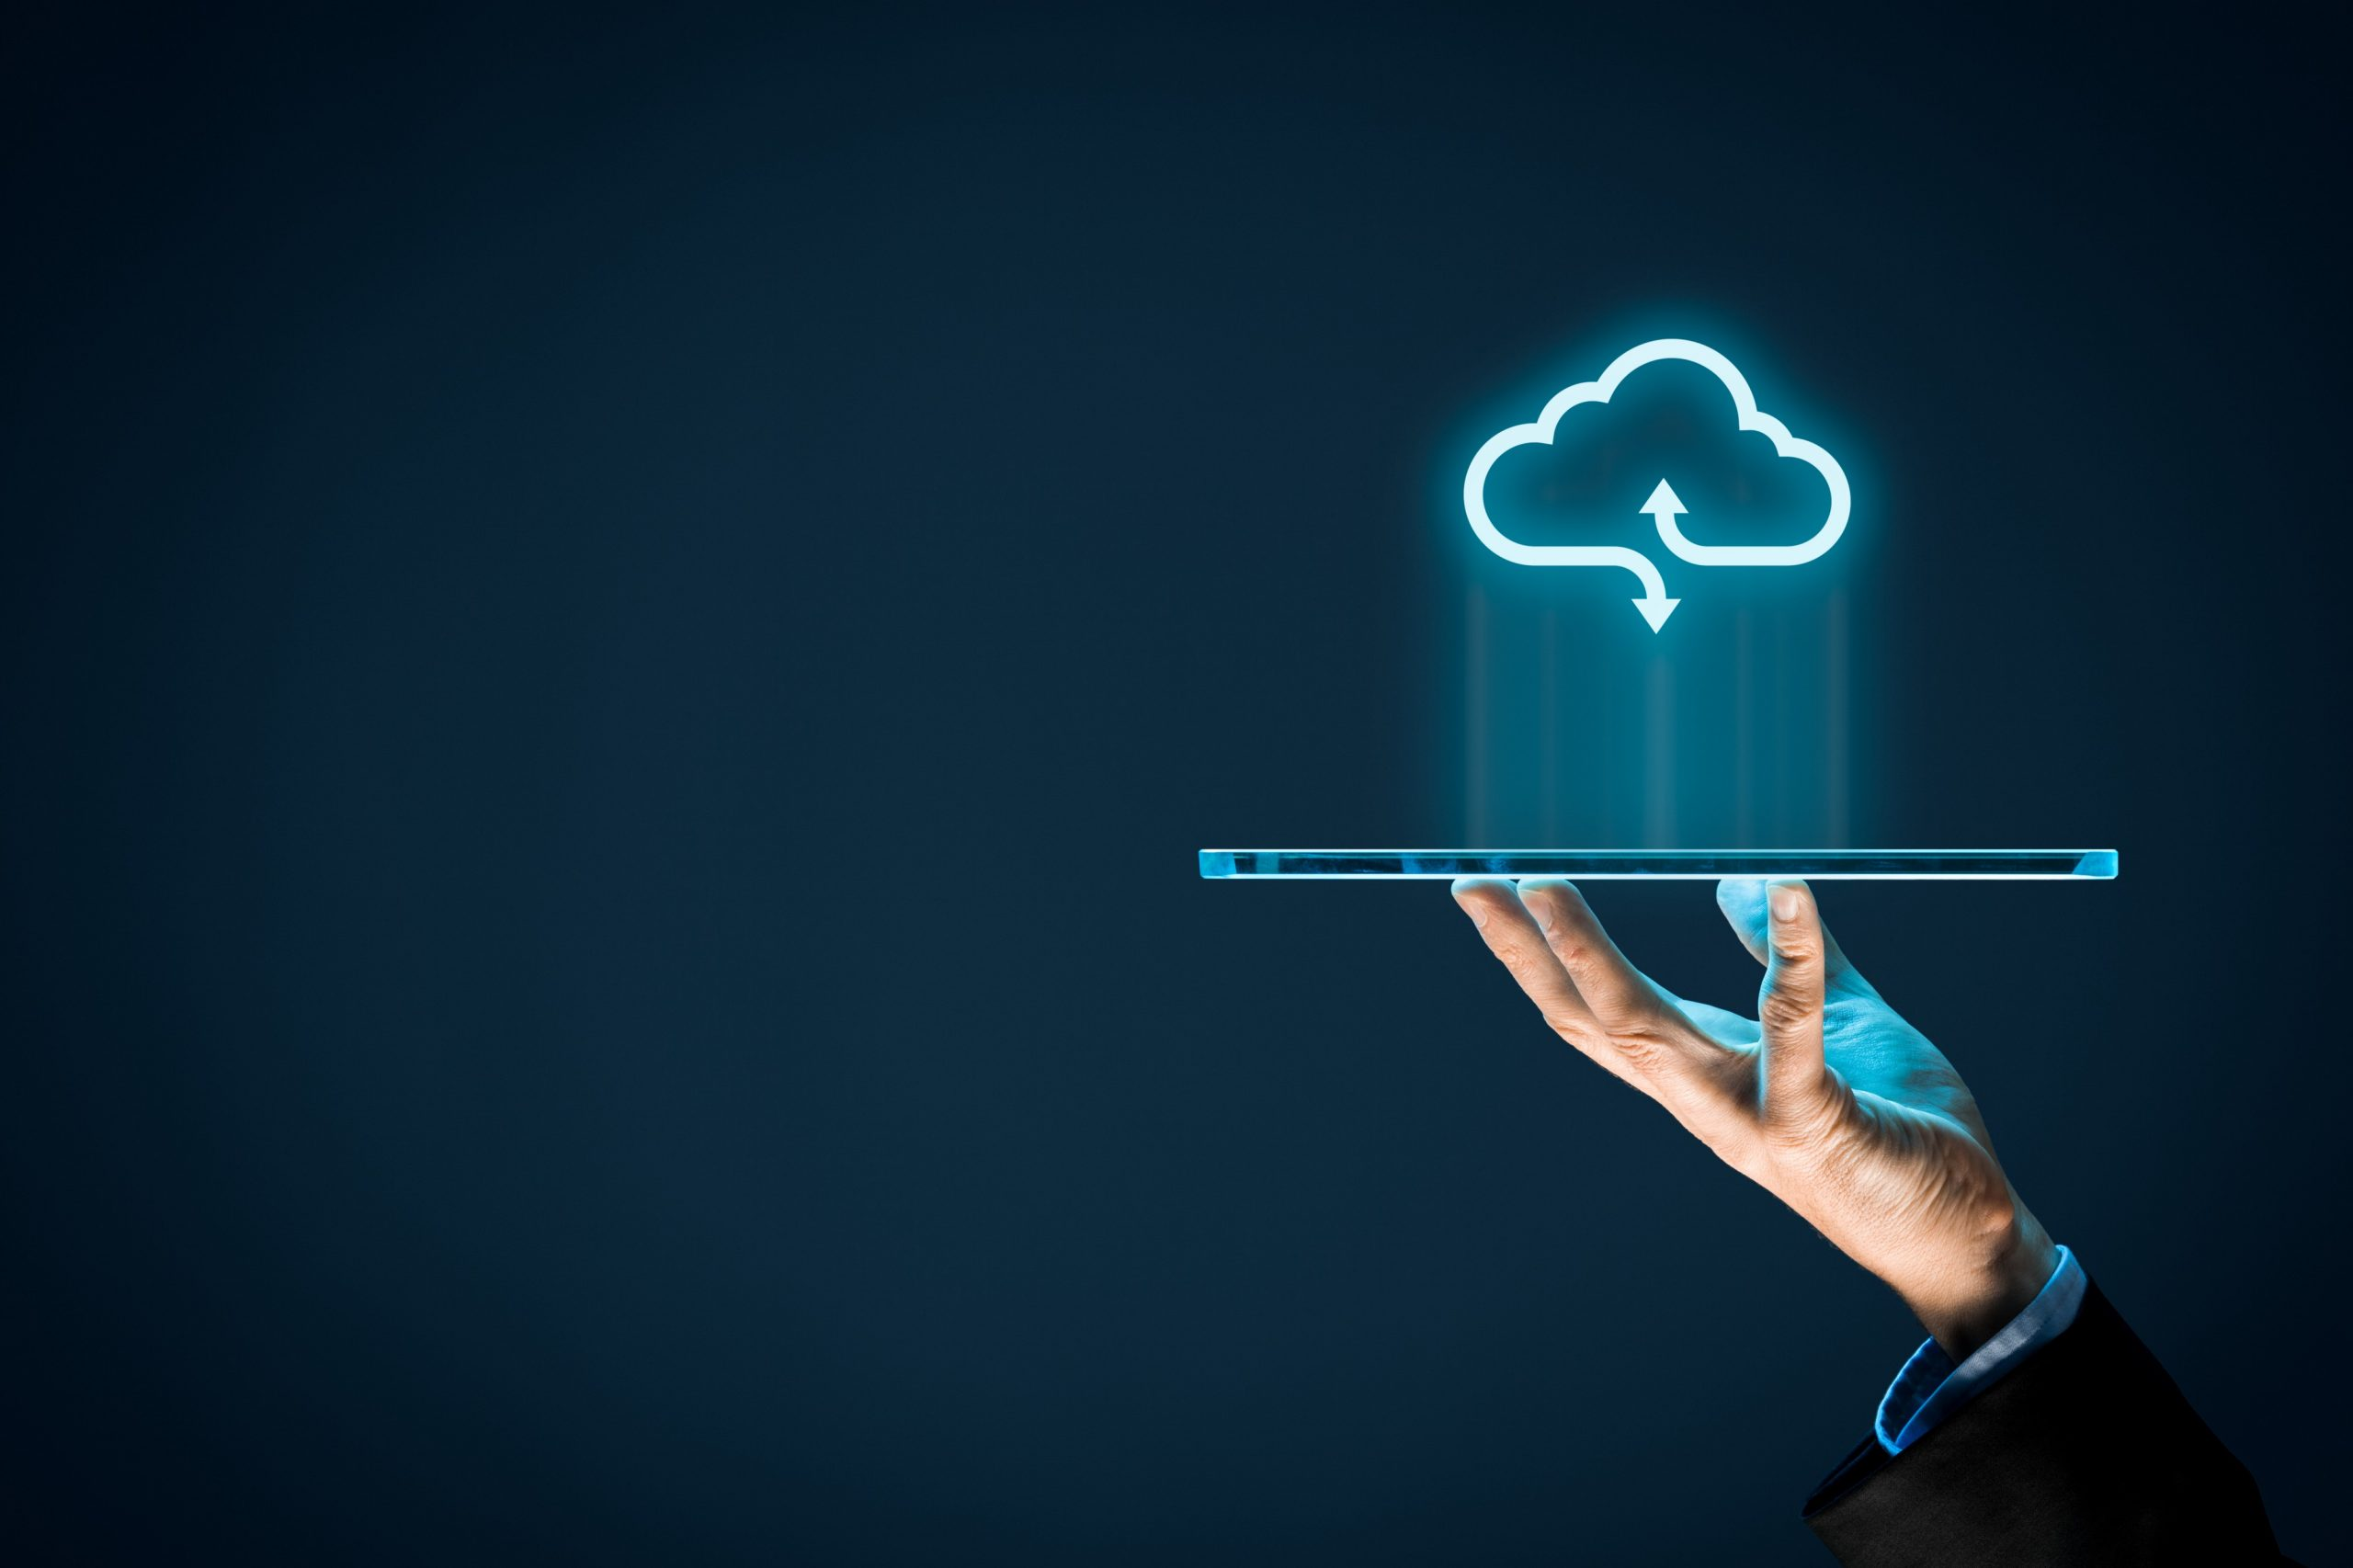 iCloud vs Google Drive: Which cloud service is better?